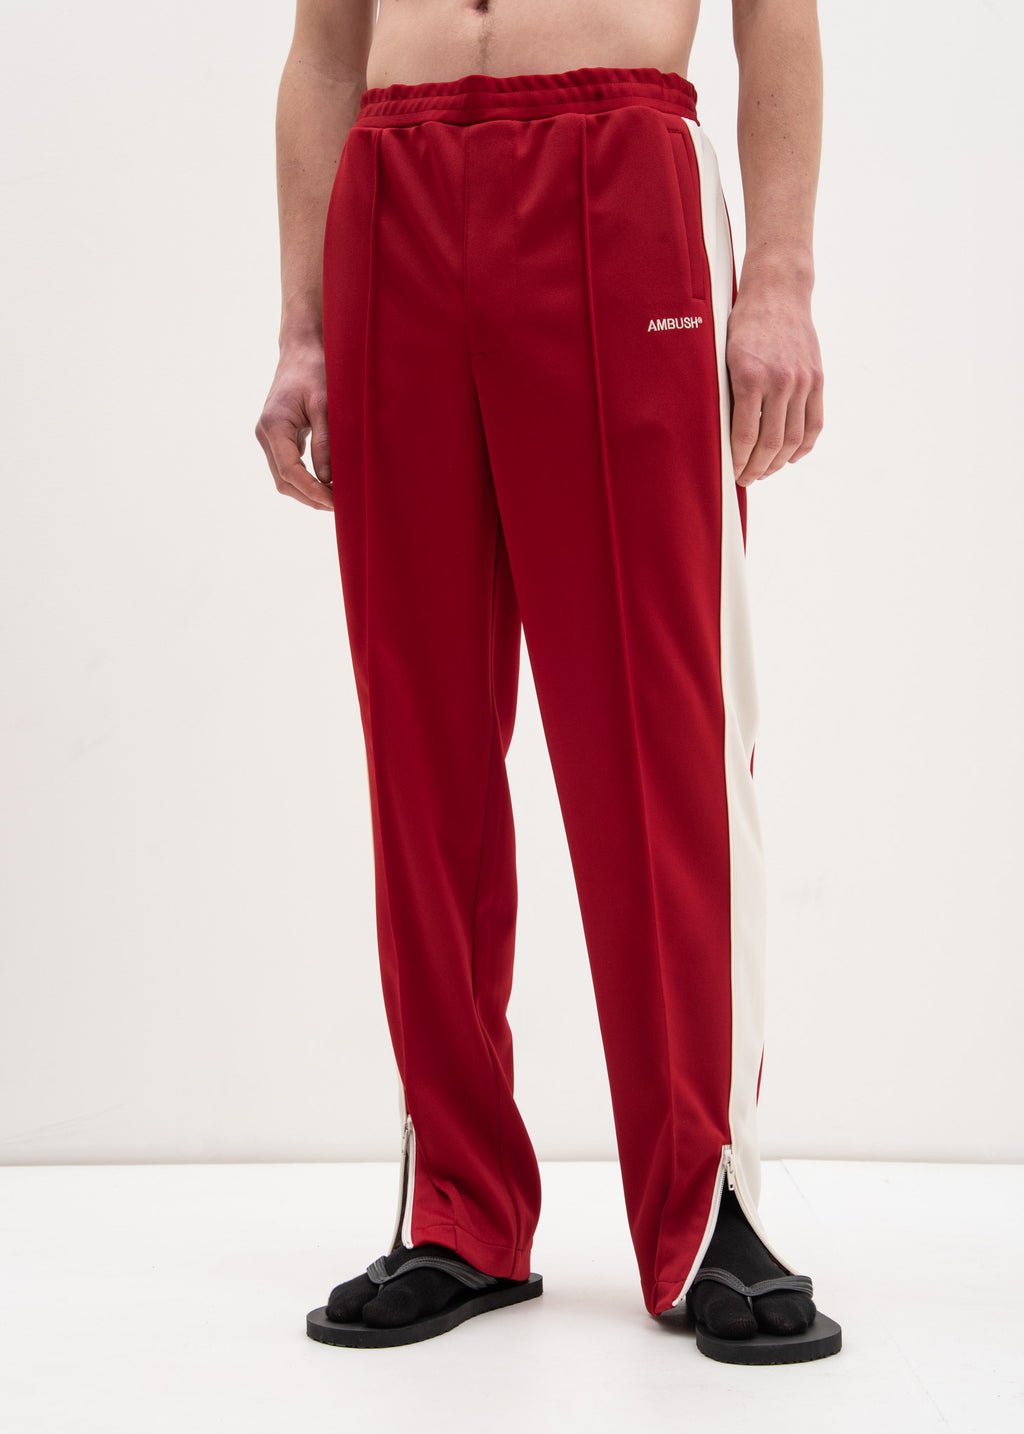 Ambush, Red Waves Track Pants, 017 Shop